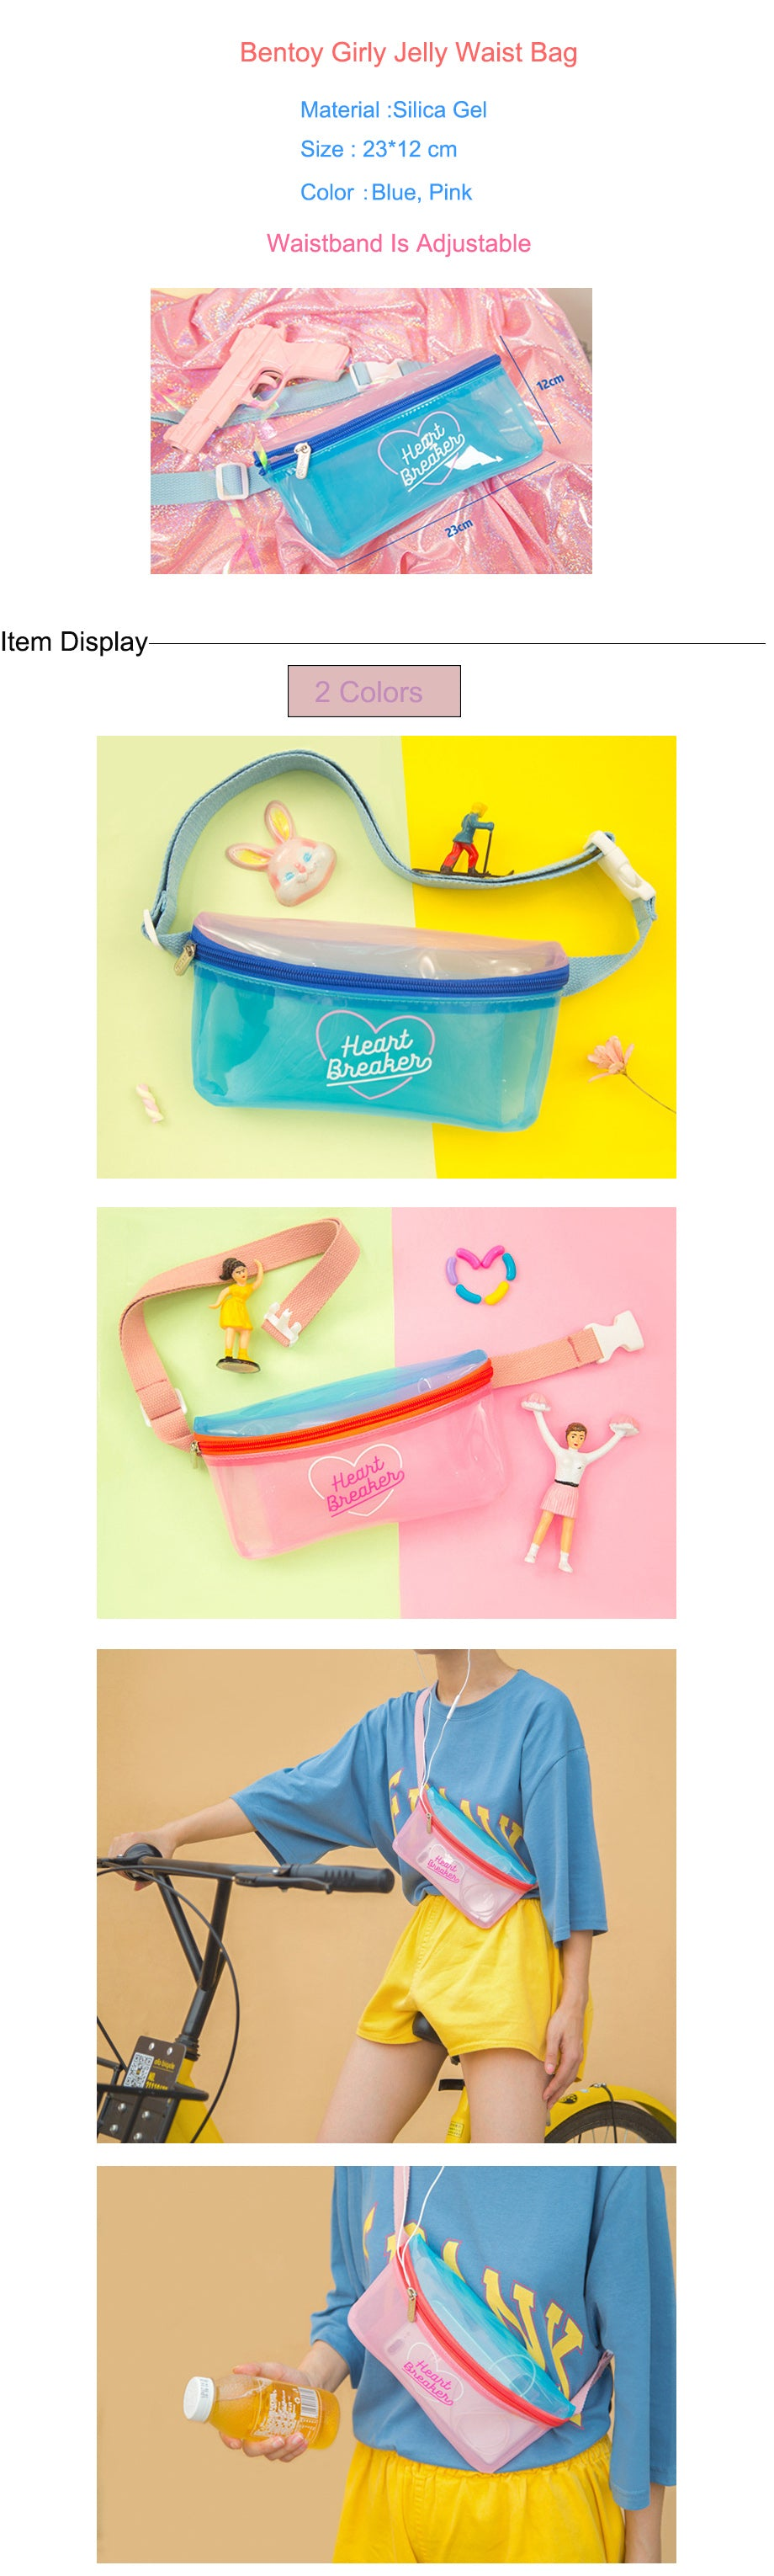 Bentoy Jelly Waterproof Women Waist Pack Crossbody Bag For Women Fashion Patchwork Chest Bag Causal Strap Girls Shoulder Bag